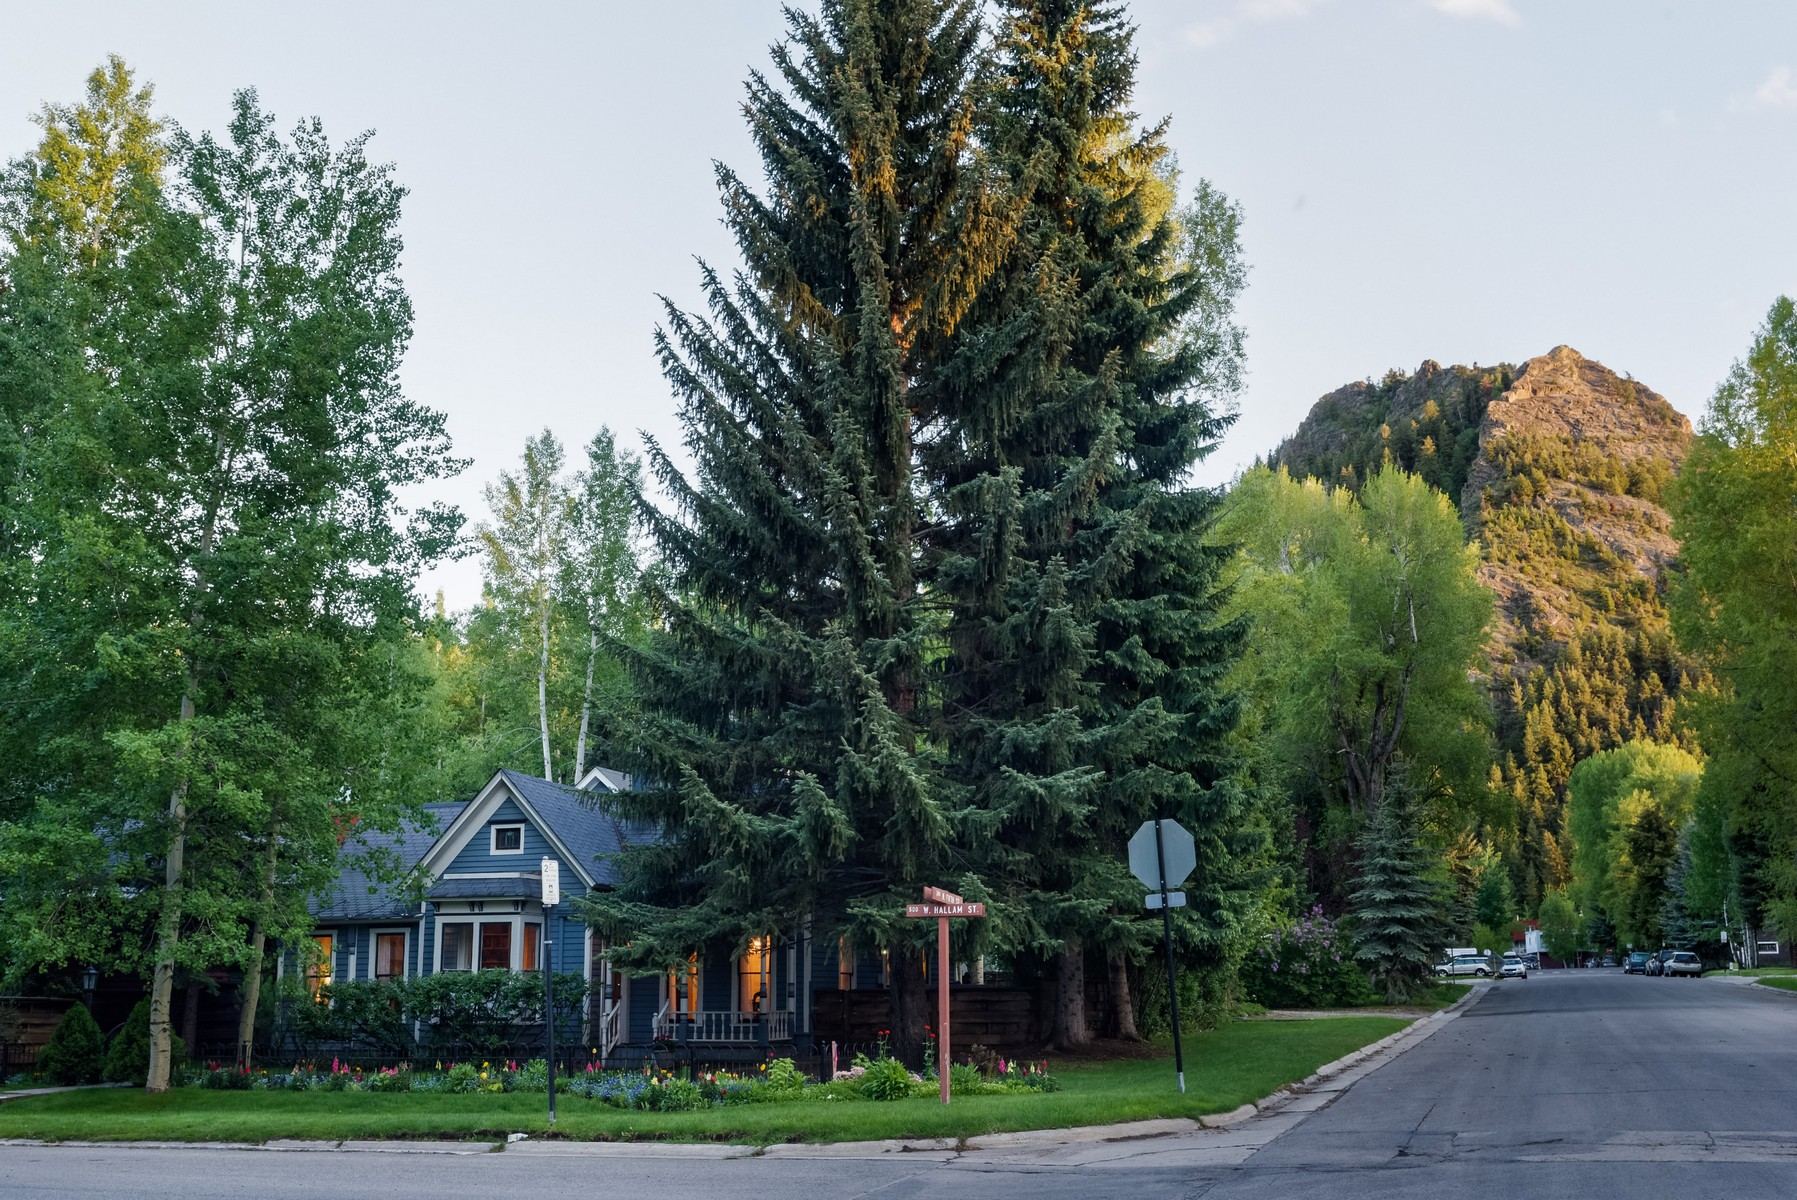 Single Family Home for Sale at West End Jewel 533 W. Hallam, LLC West End, Aspen, Colorado 81611 United States